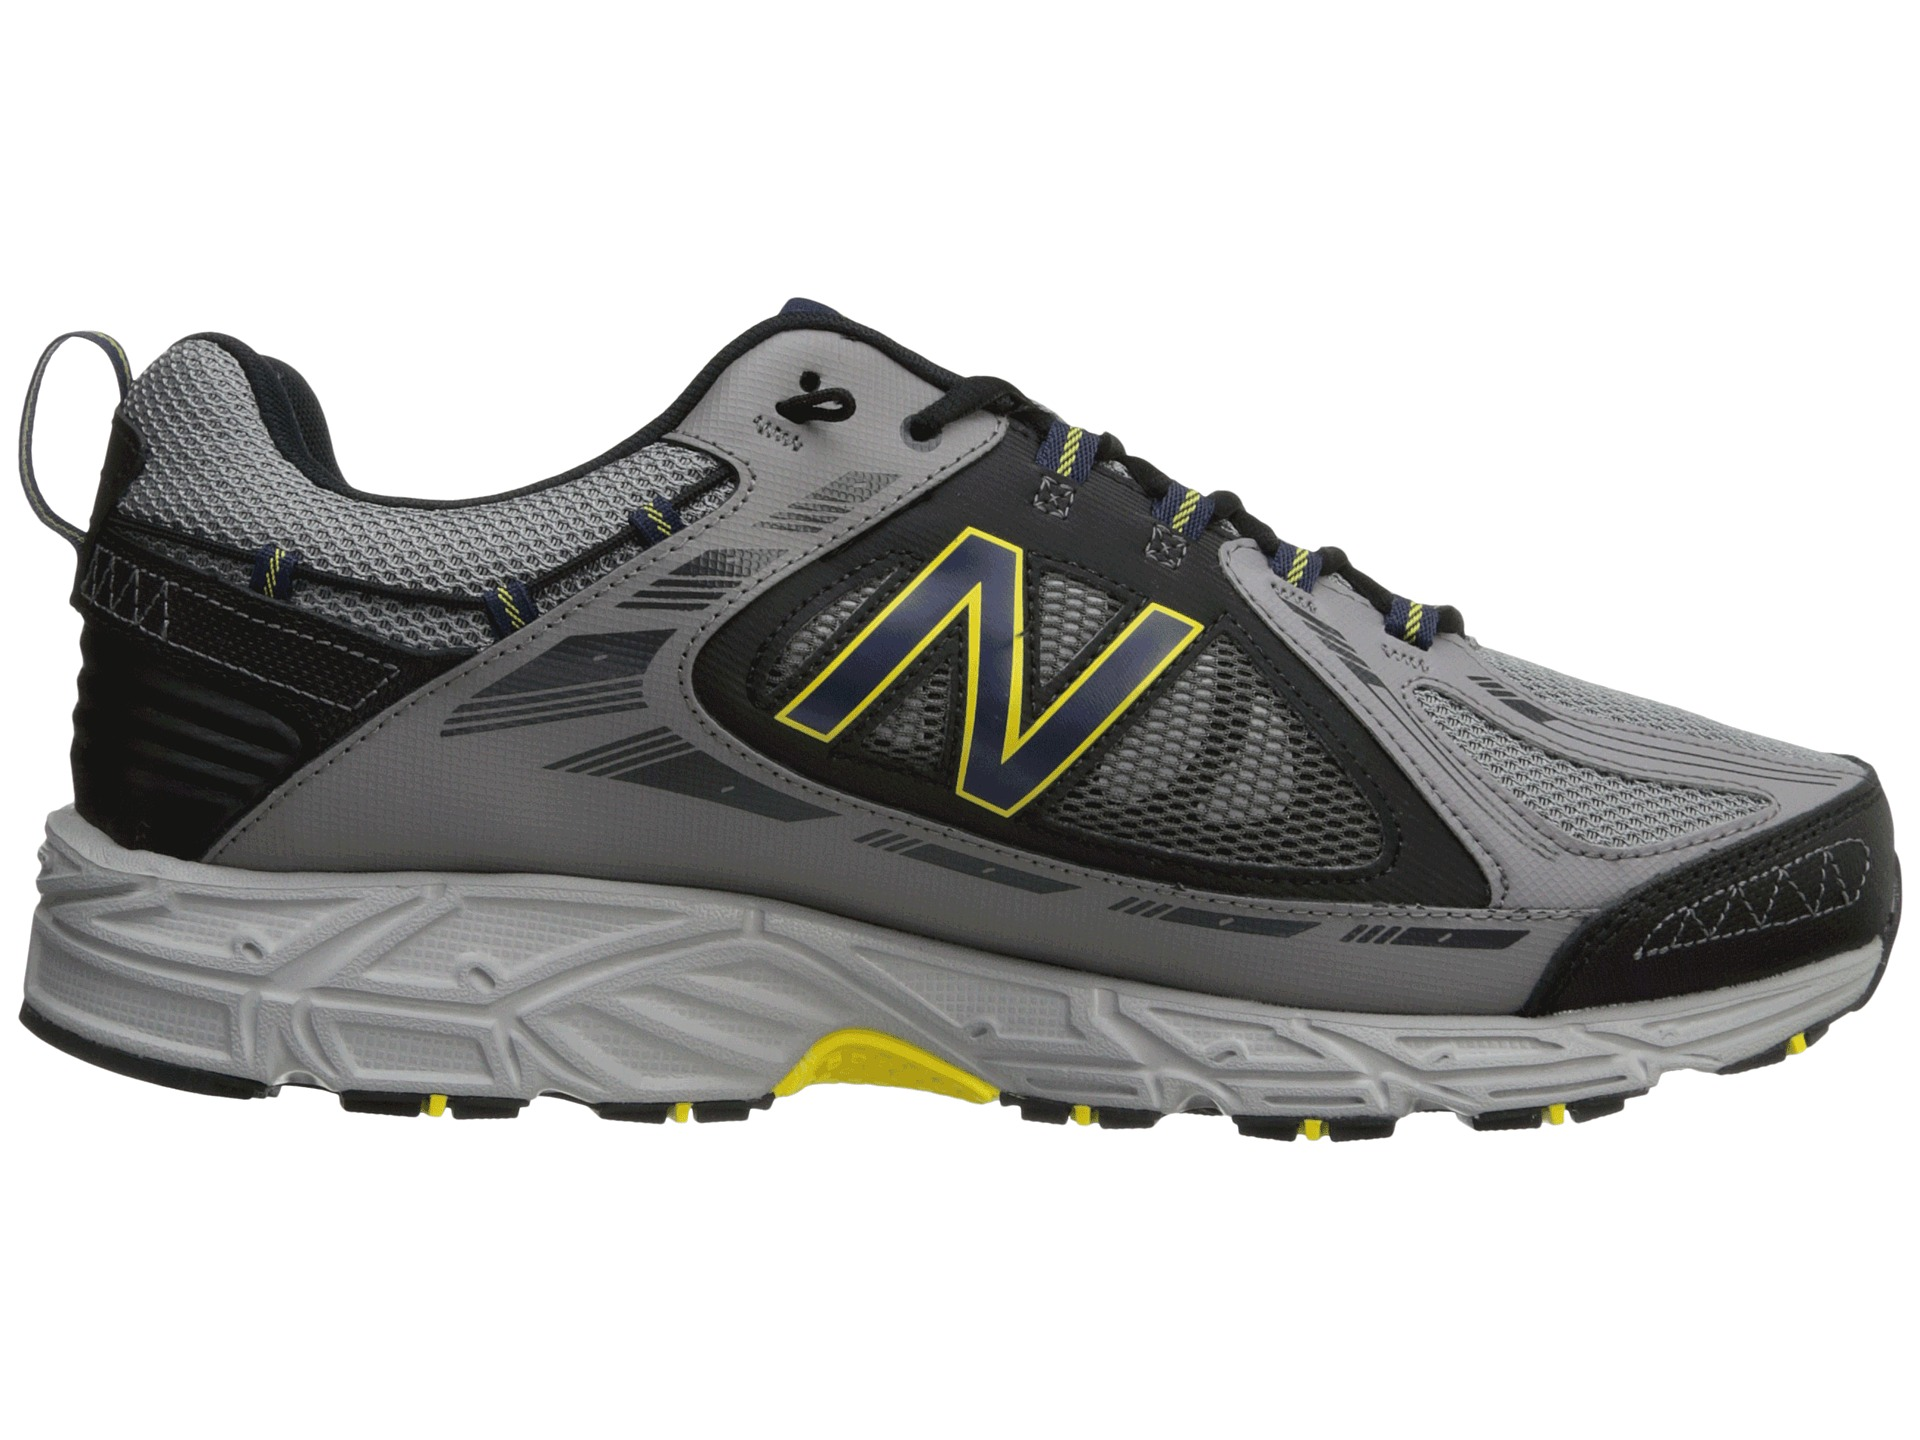 Leather Sandals For Men: Zappos New Balance